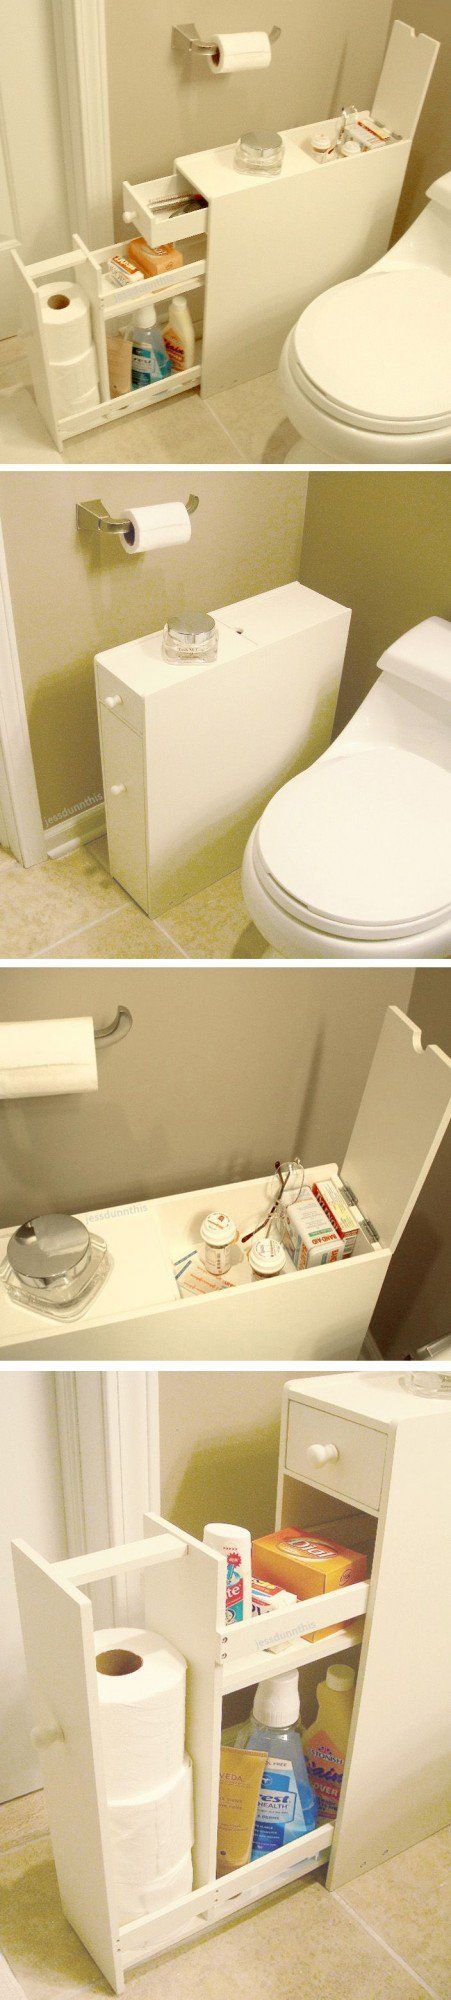 Diy bathroom storage ideas - Top 25 The Best Diy Small Bathroom Storage Ideas That Will Fascinate You